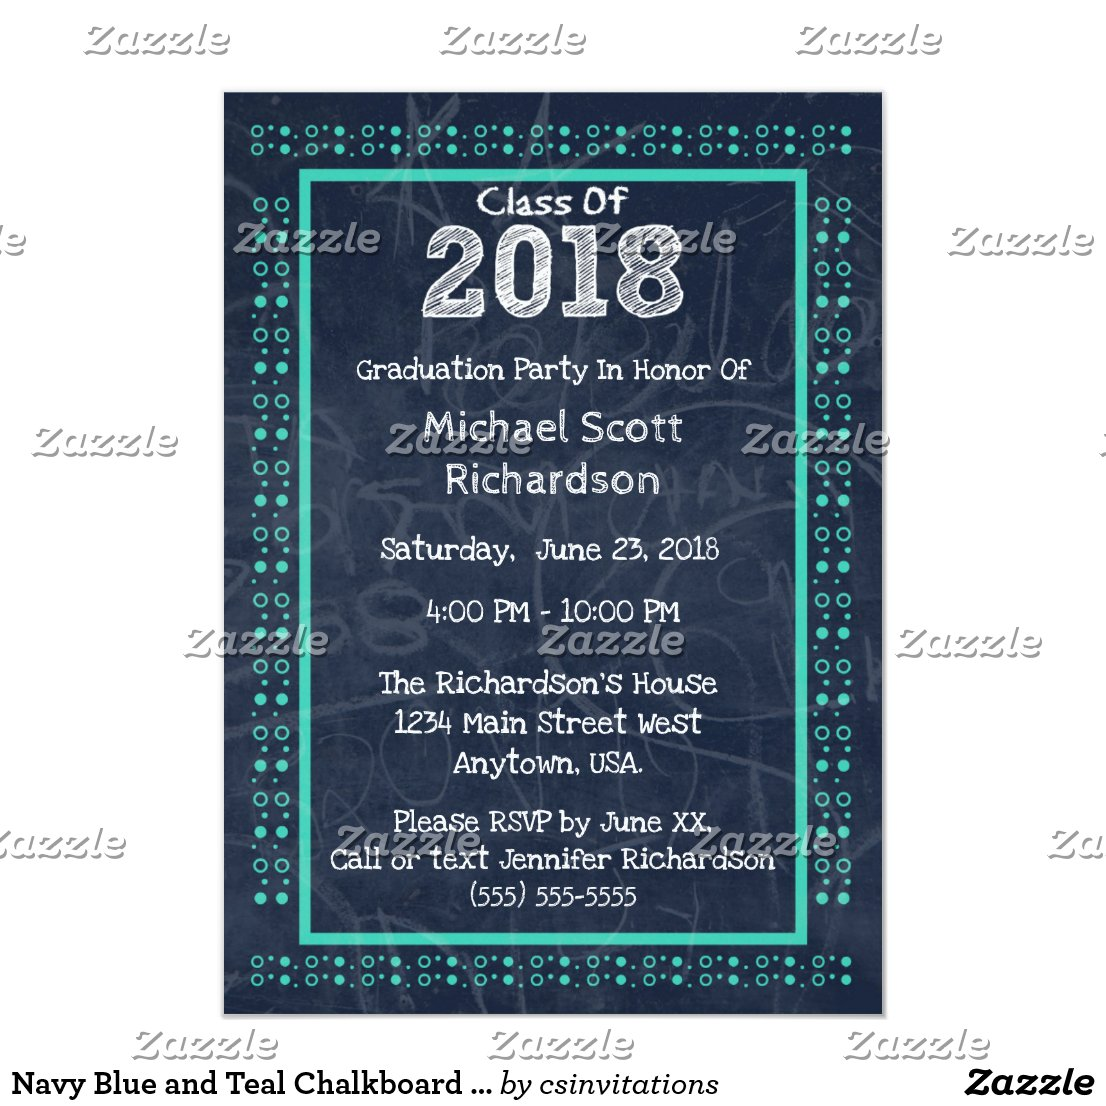 Navy Blue and Teal Chalkboard Graduation Party Card